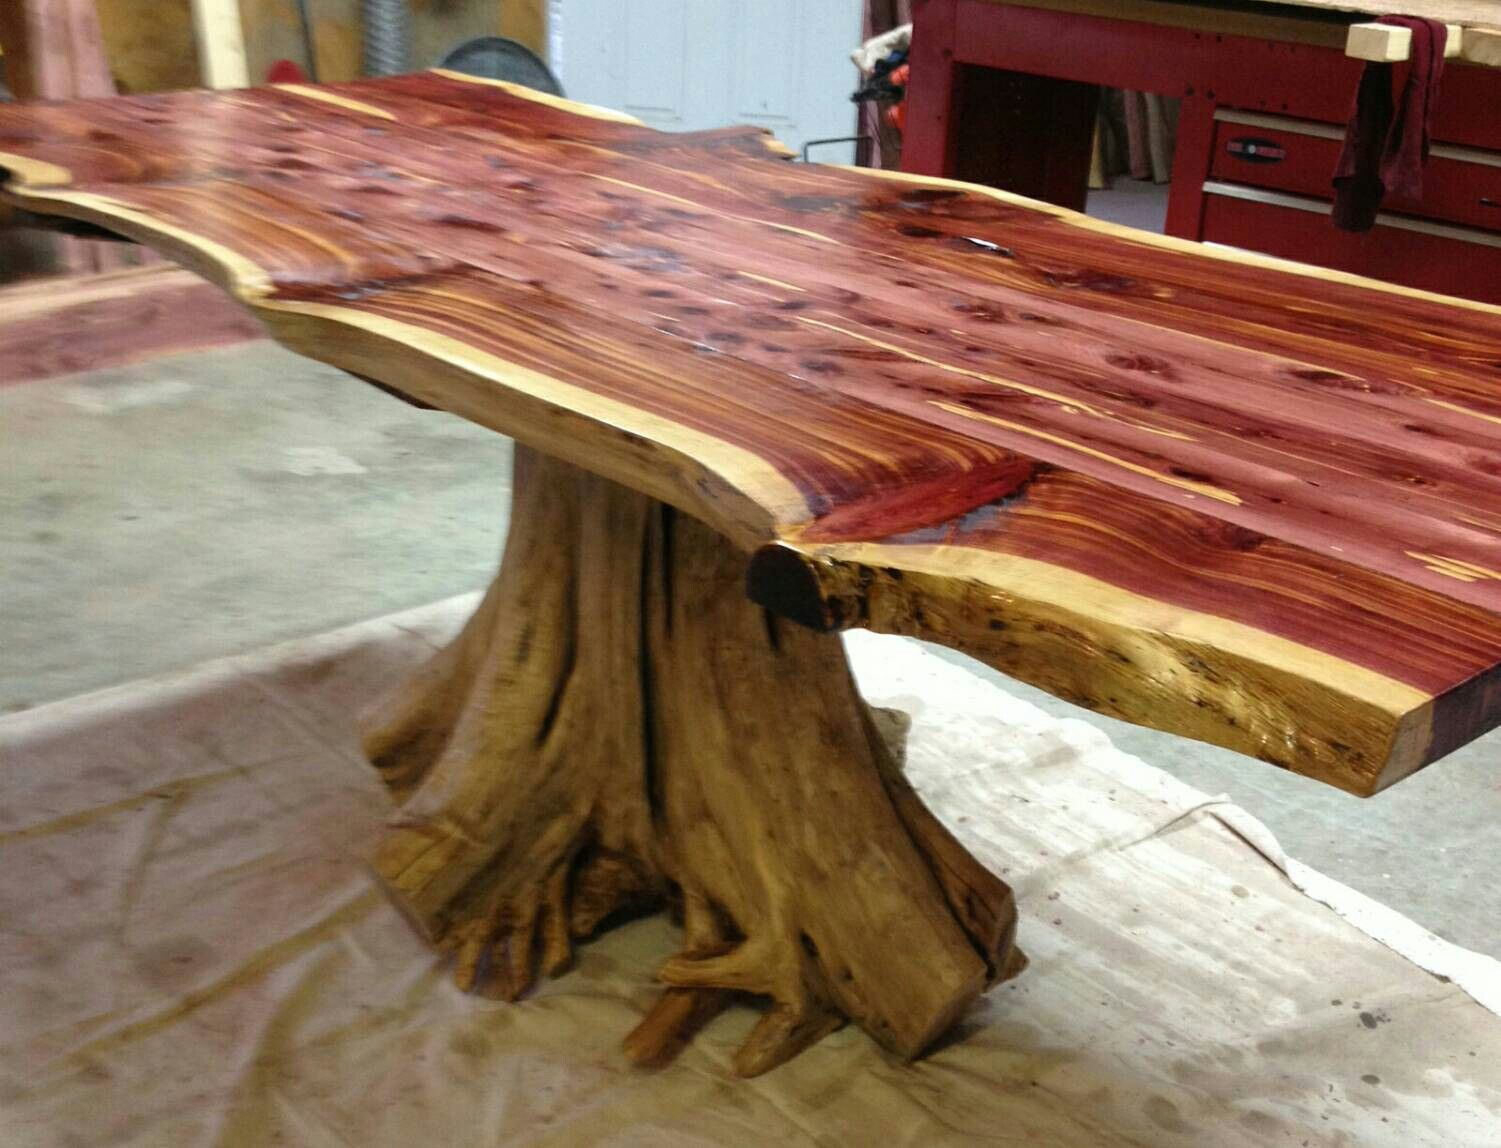 Ordinaire Live Edge Cedar Stump Dining Table Wooden Slab Table, Wood Table Legs, Cedar  Table